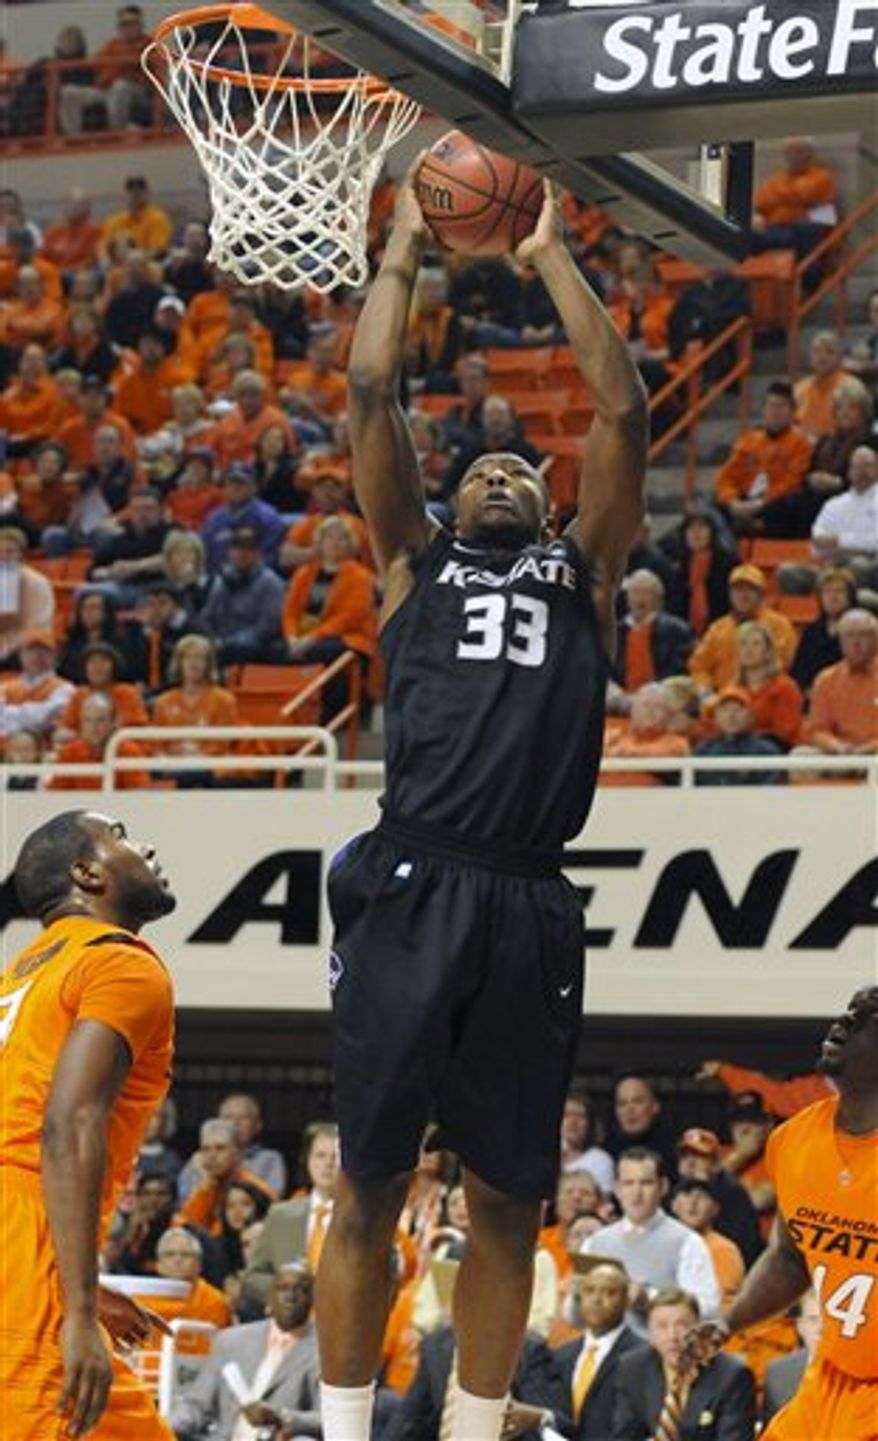 Oklahoma State forward Marshall Moses, left, and guard Ray Penn, right watch as Kansas State forward Wally Judge, center, takes a shot during the first half of an NCAA basketball game in Stillwater, Okla. Saturday, Jan. 8, 2011. (AP Photo/Brody Schmidt)